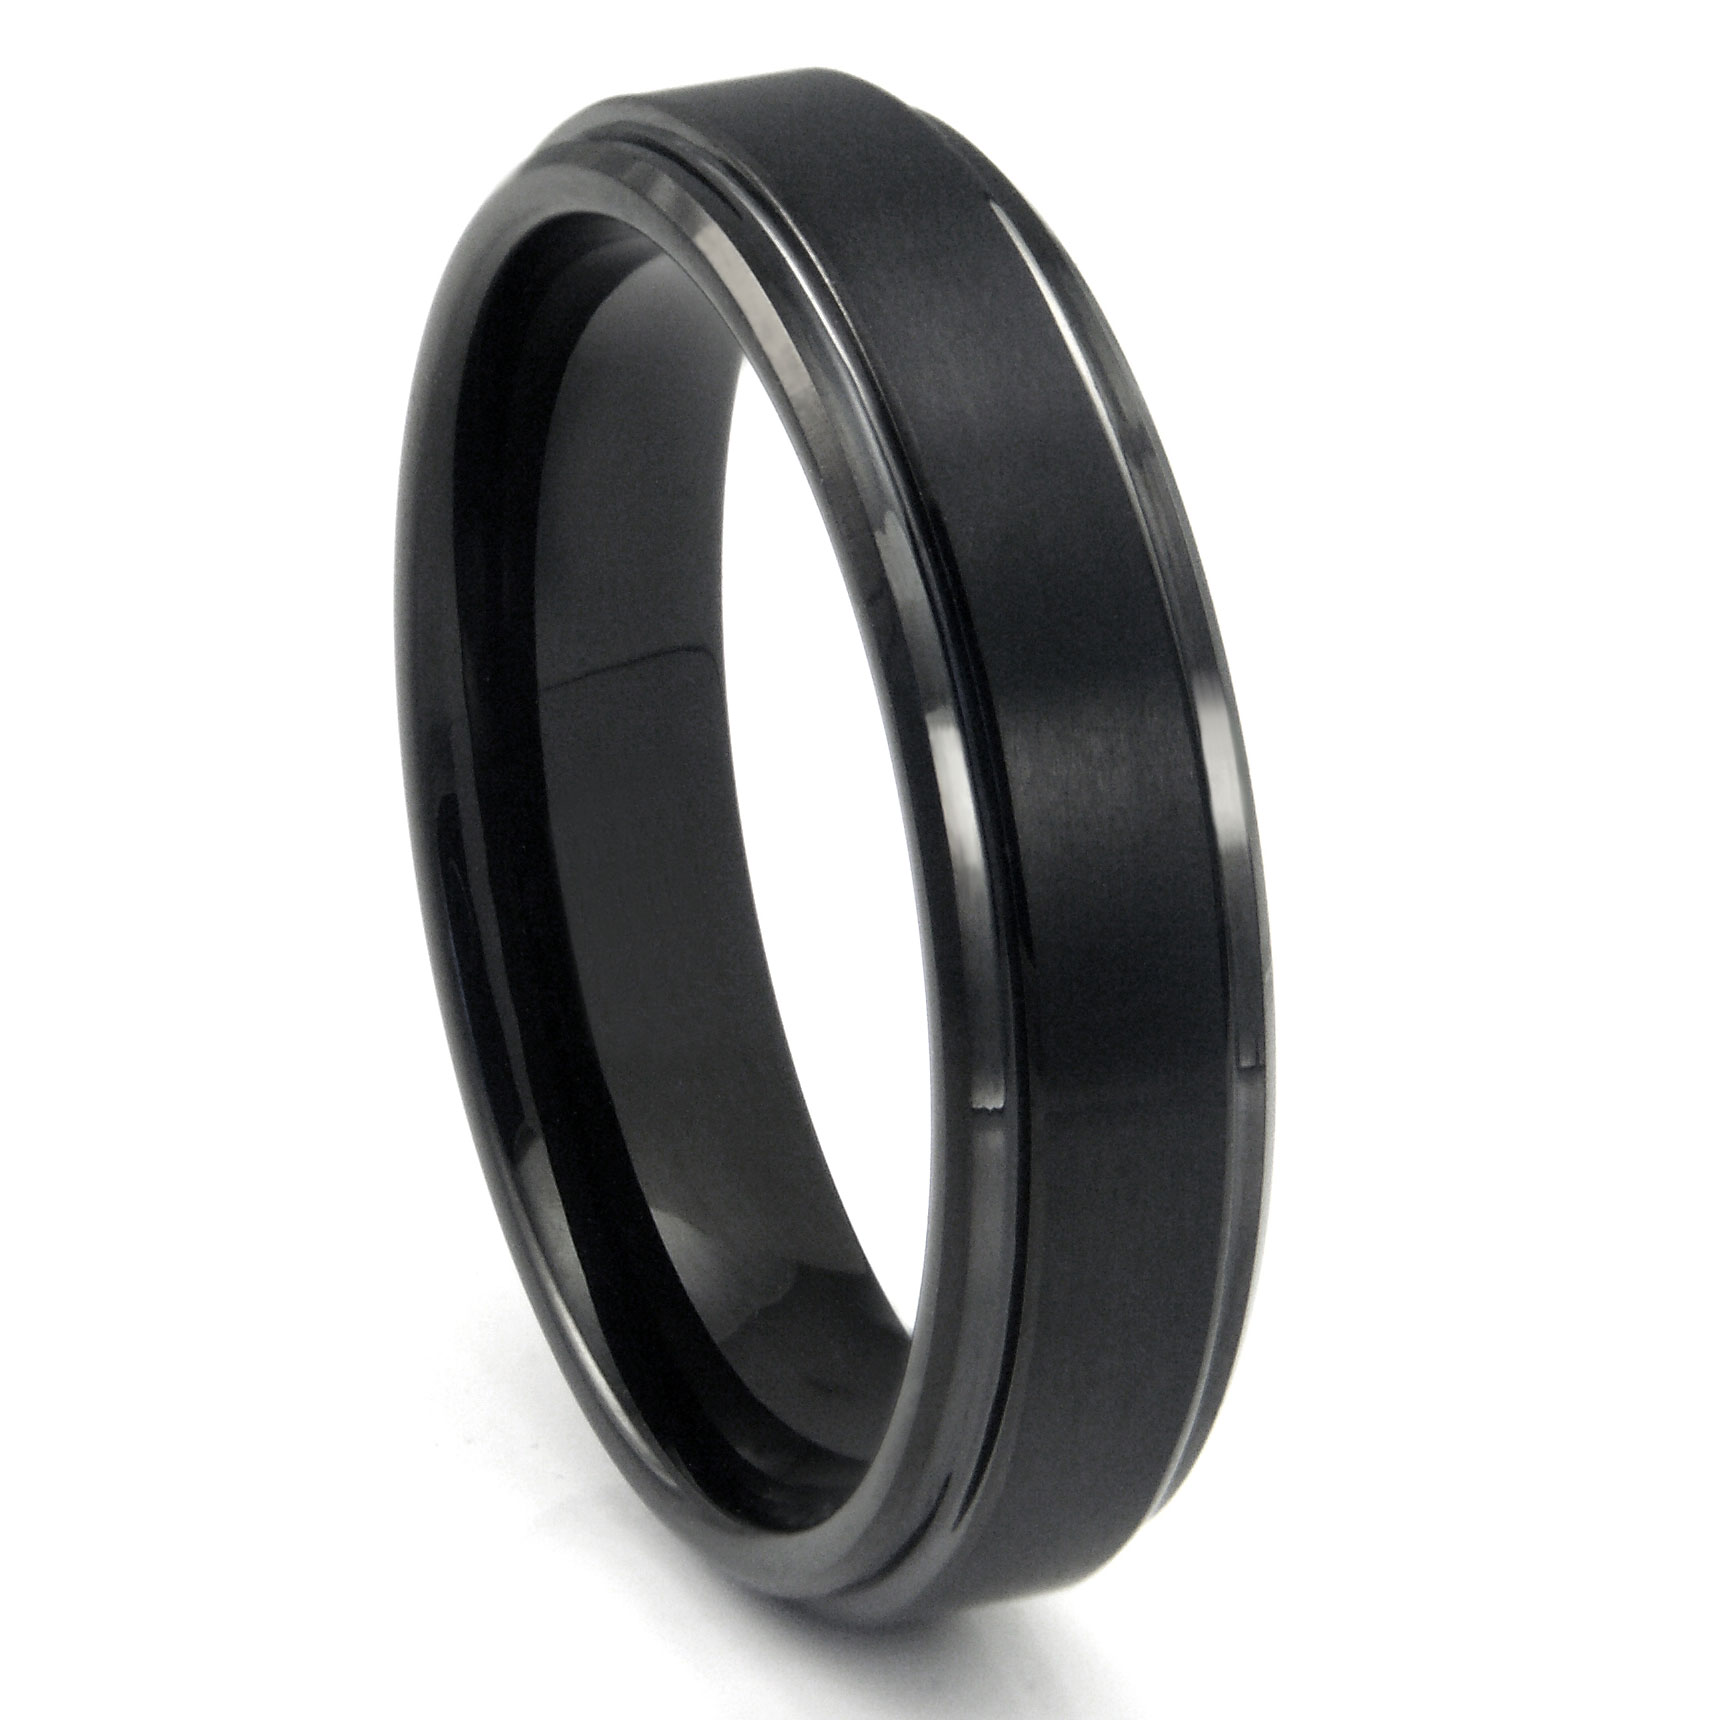 design bands black wedding domed amazon tyre dp king finish tungsten fit com will rings ring comfort matte band groove carbide